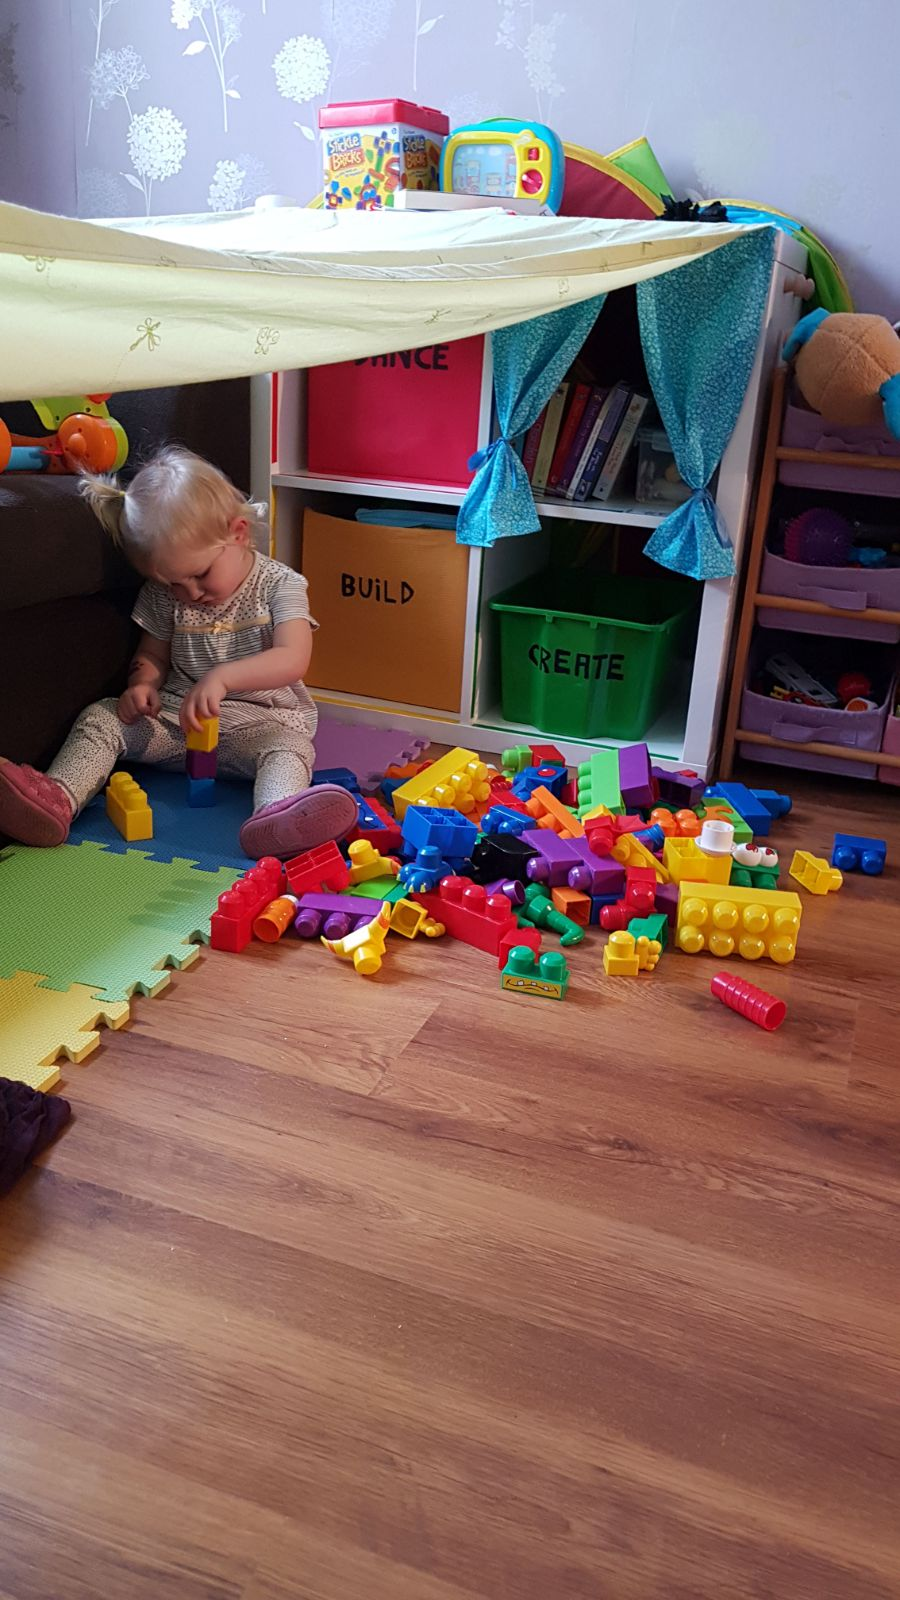 Amber creating her masterpiece in her den